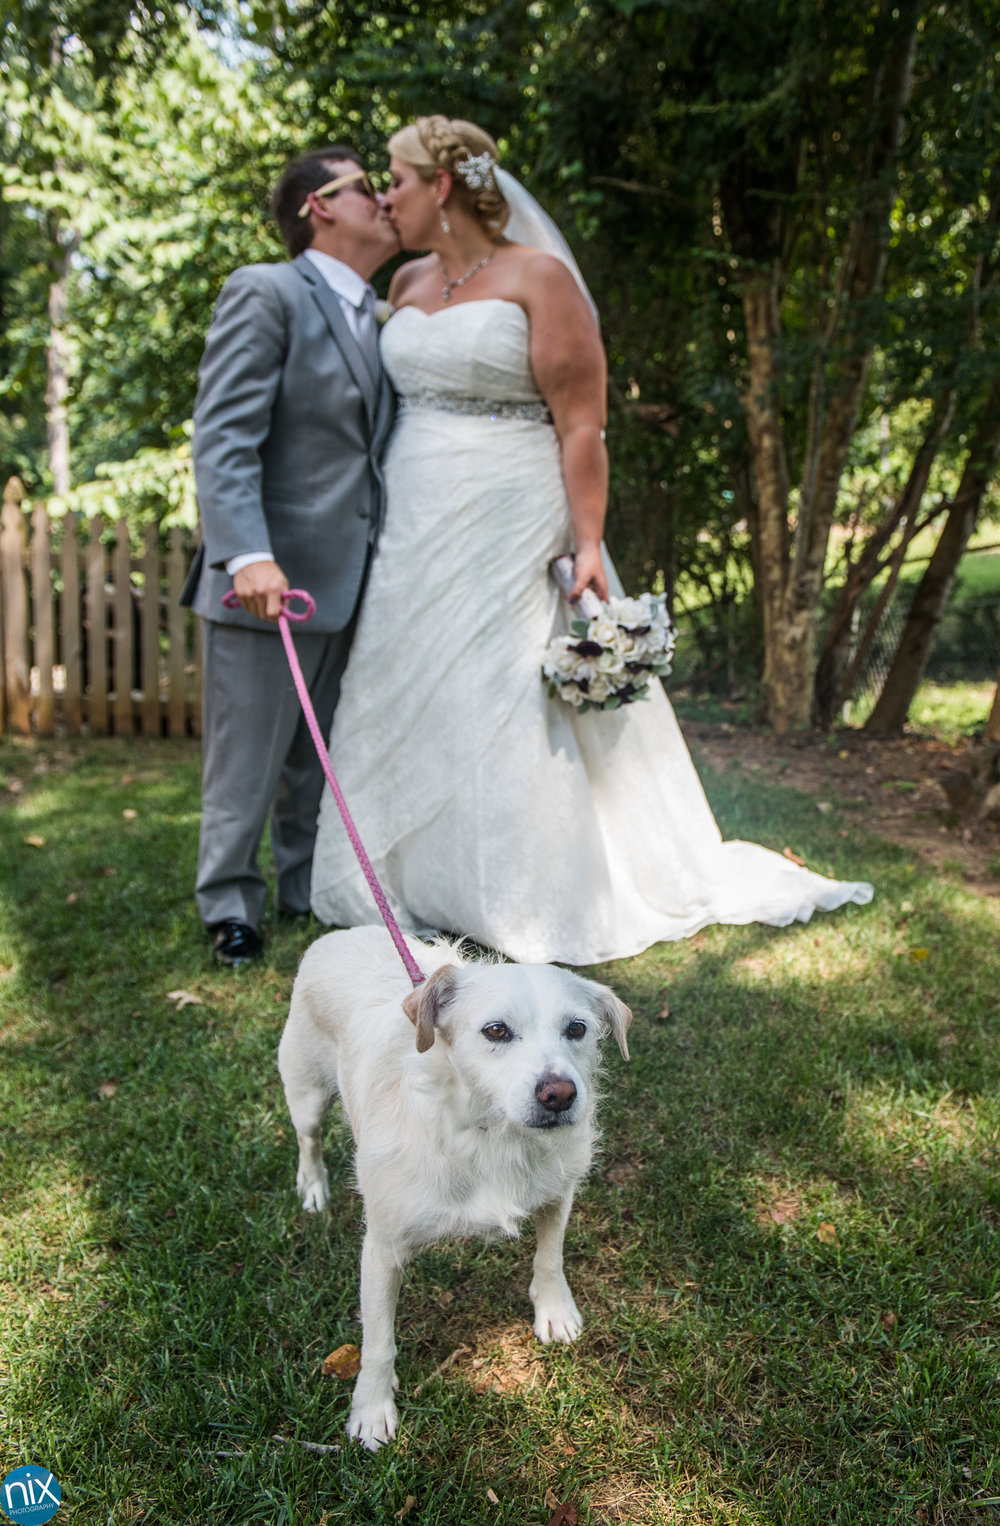 bride groom kiss dog.jpg